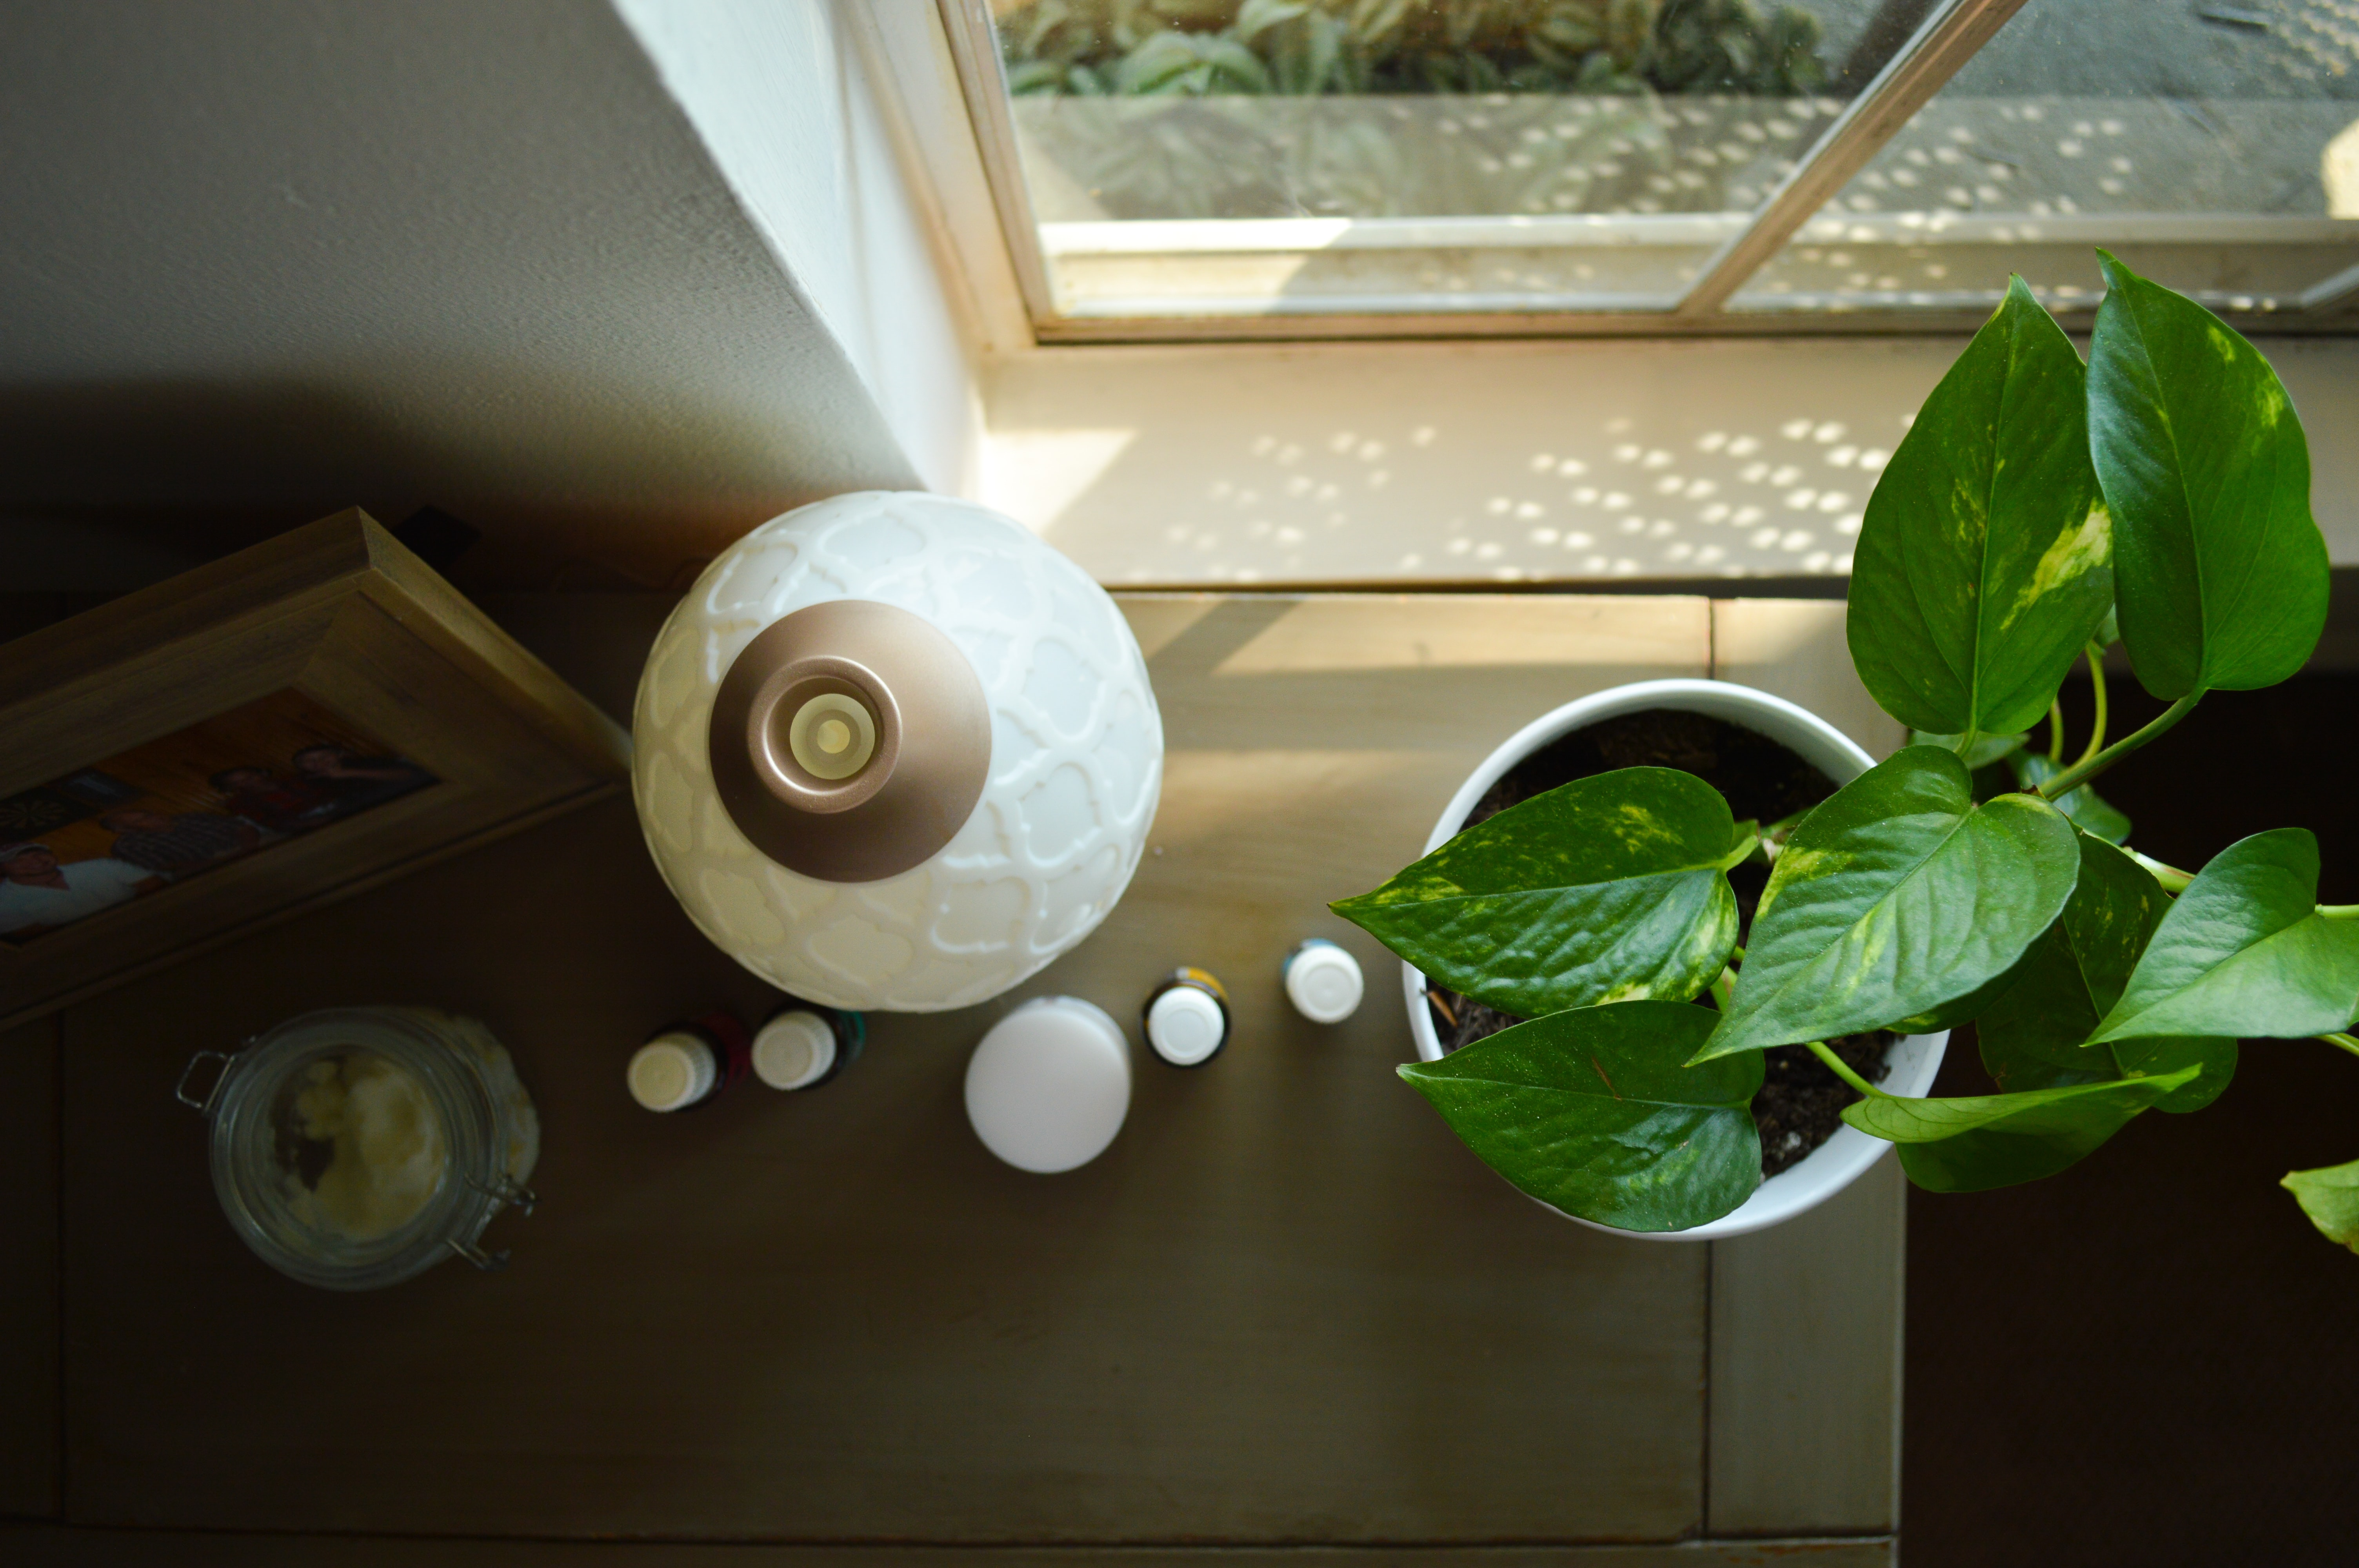 green leafed plant on table near lamp